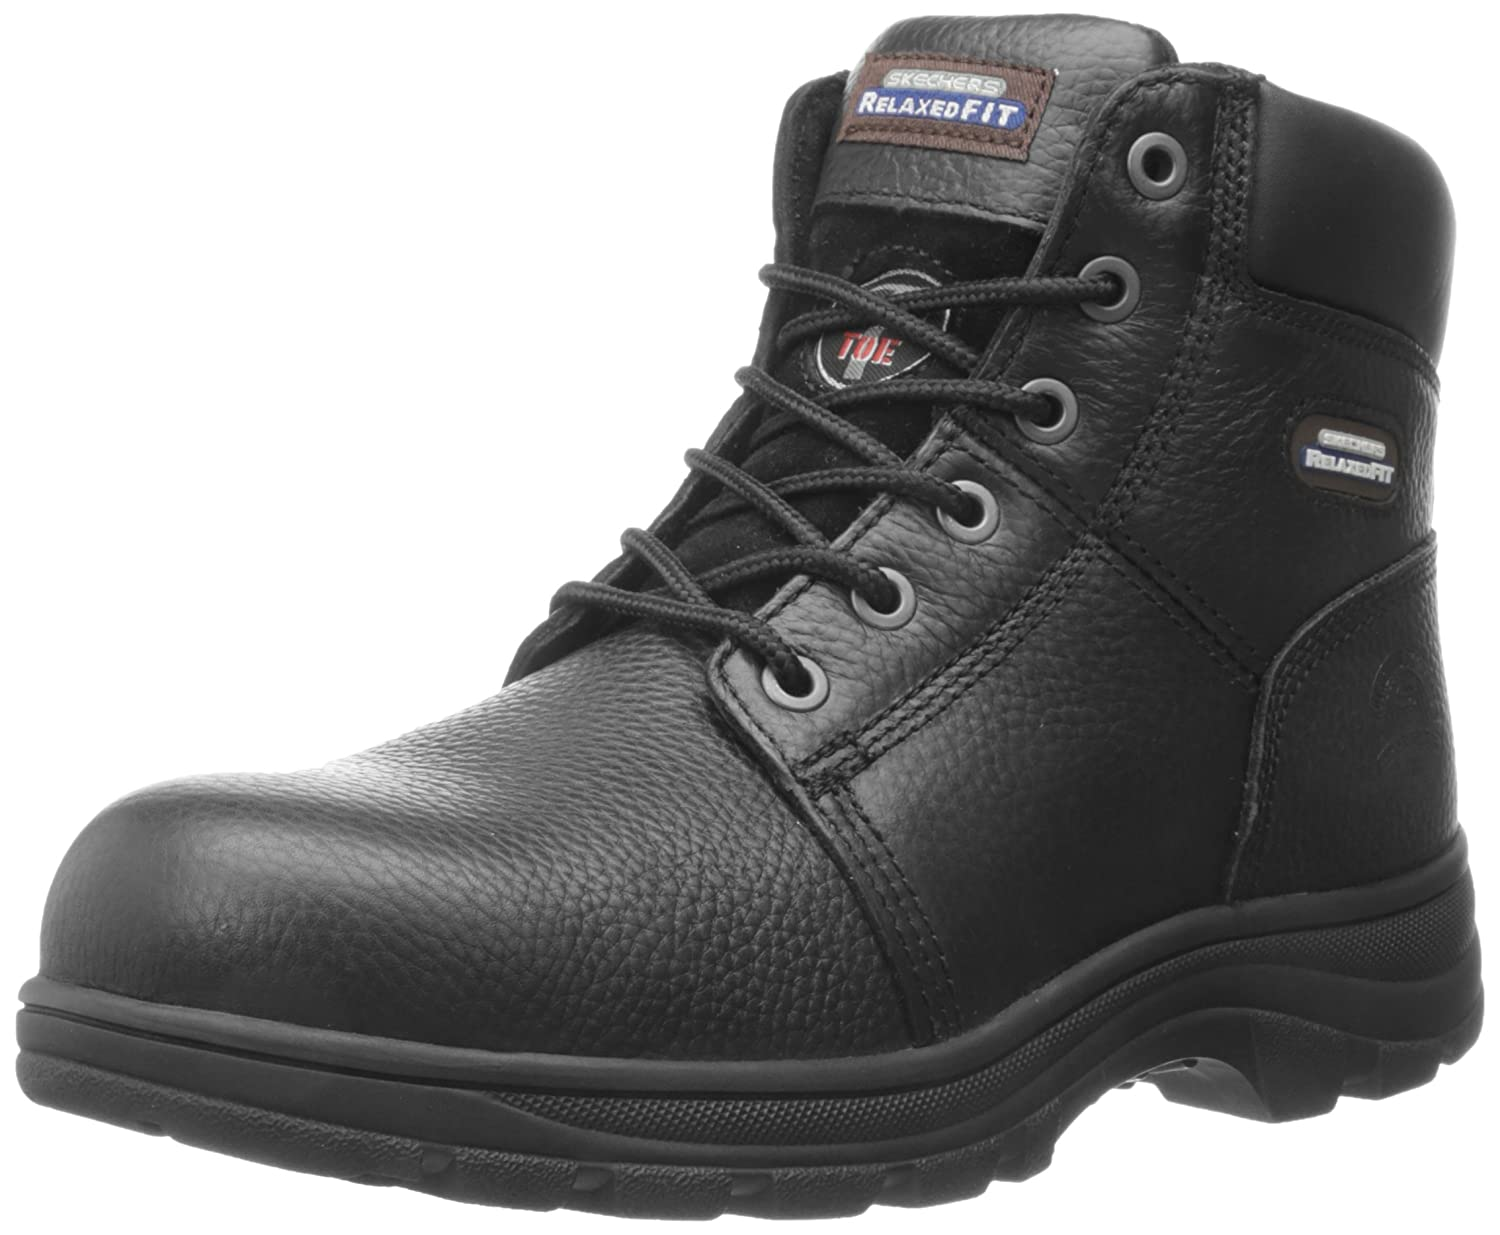 Amazon.com: Skechers for Work Men's 77009 Workshire Relaxed Fit ...